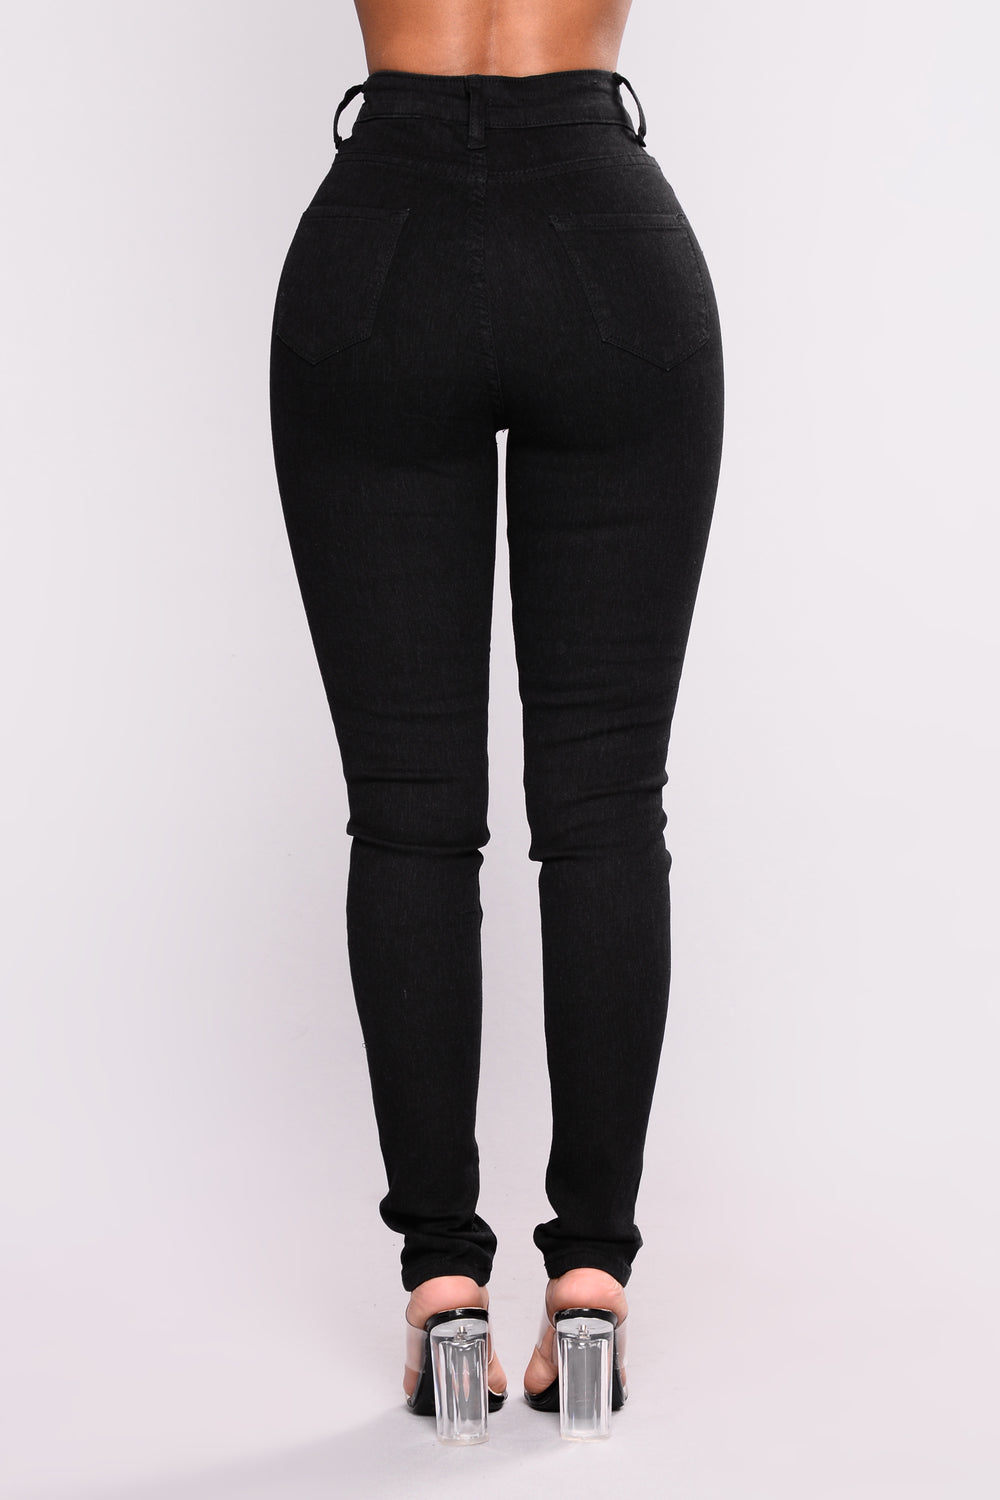 Heaven Sent Skinny Jeans - Black